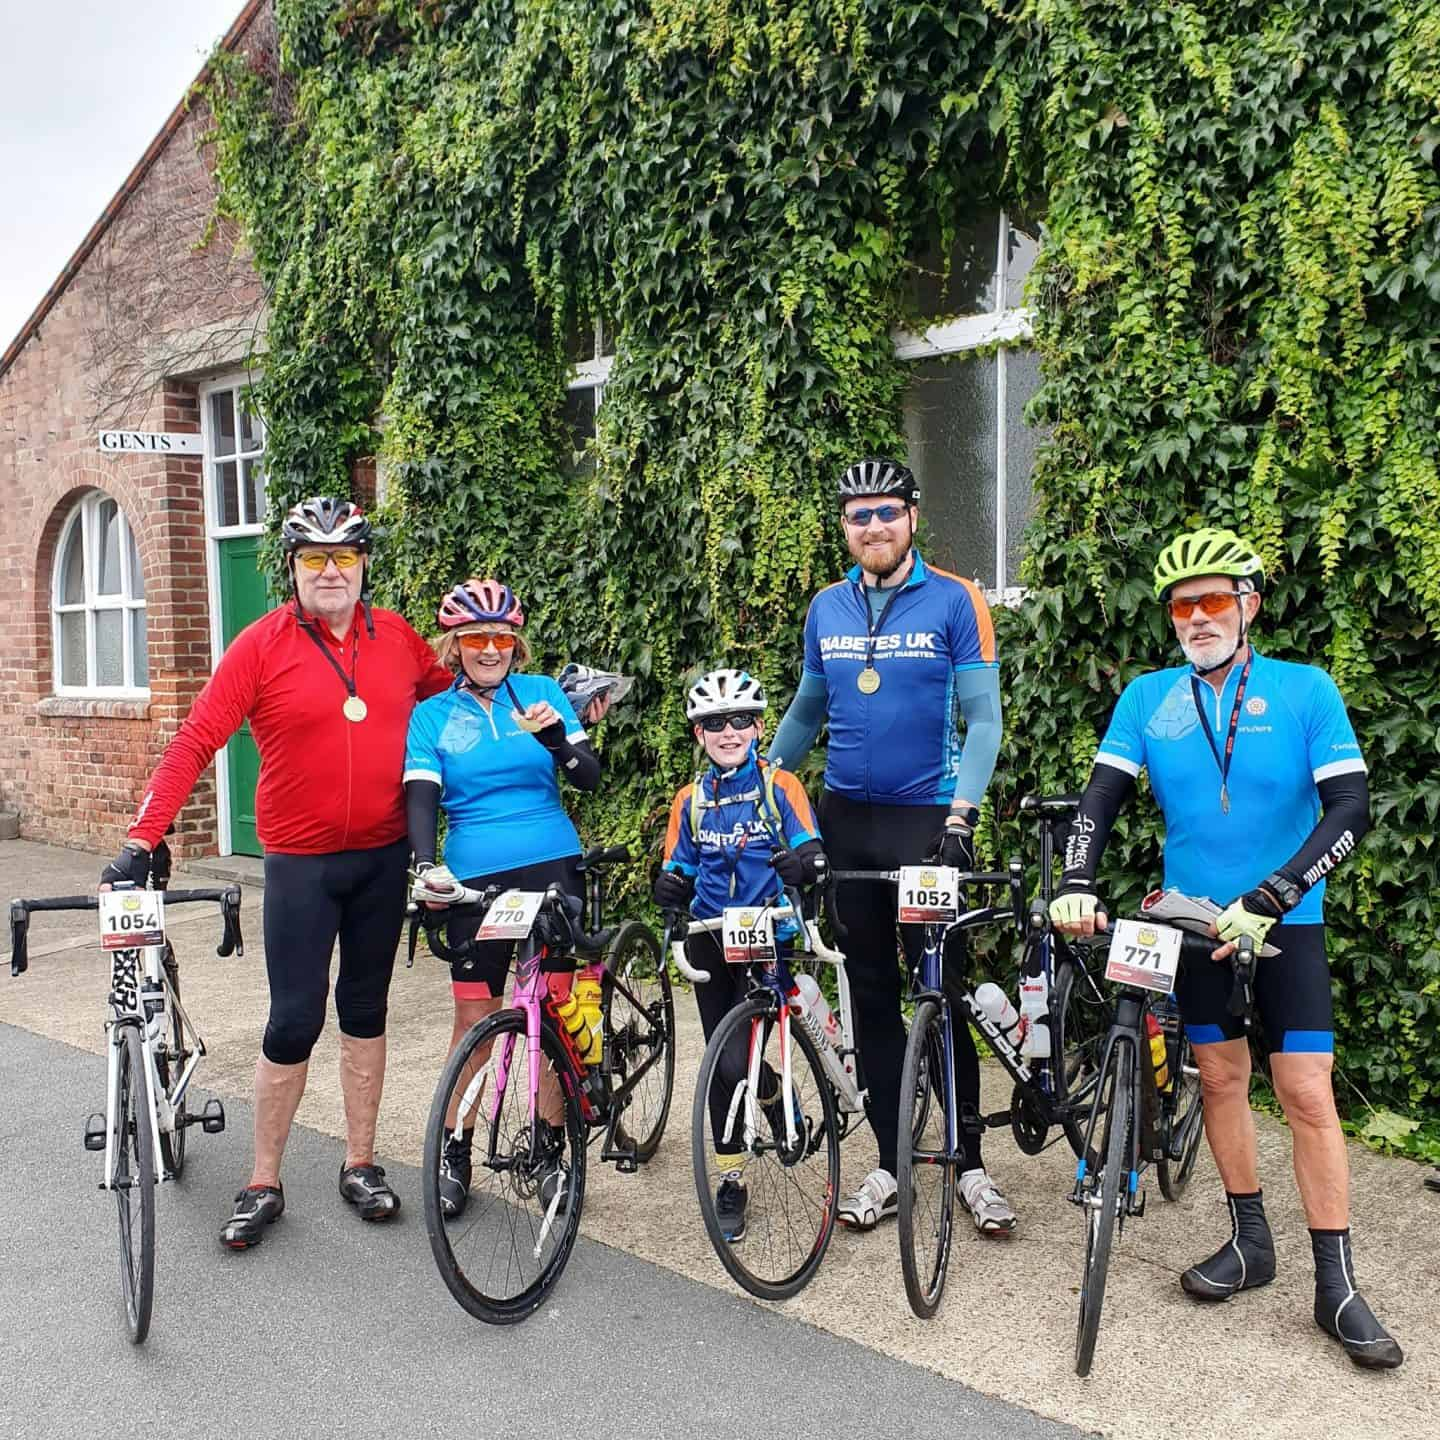 Three generations complete the Ride Yorkshire Sportive 2019